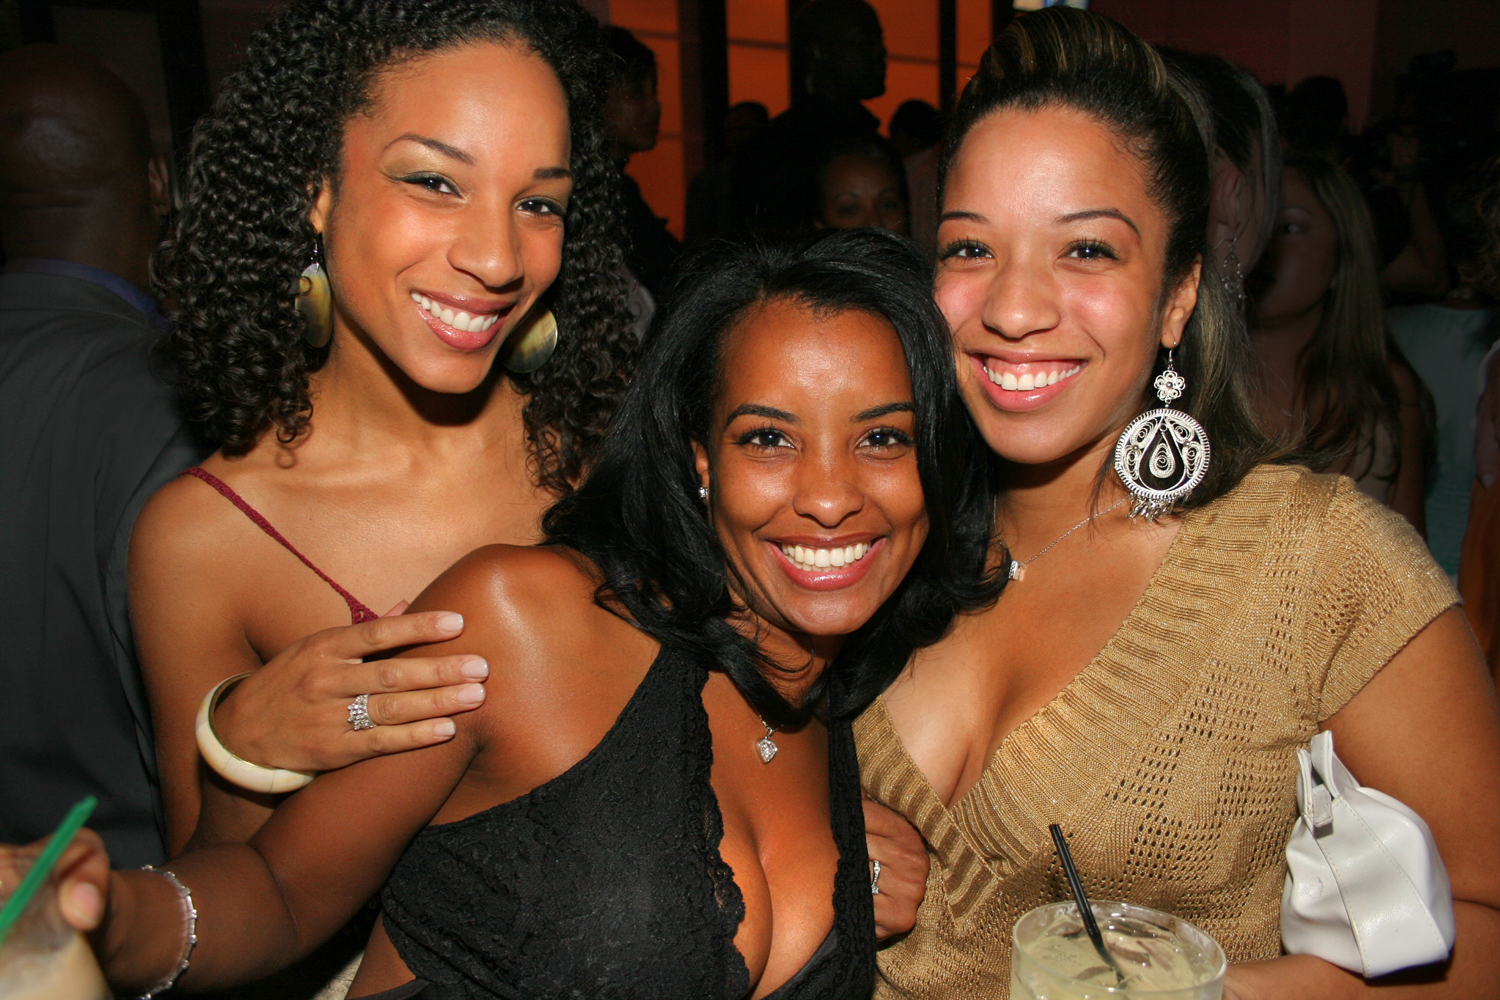 sexy black chicks drinking event